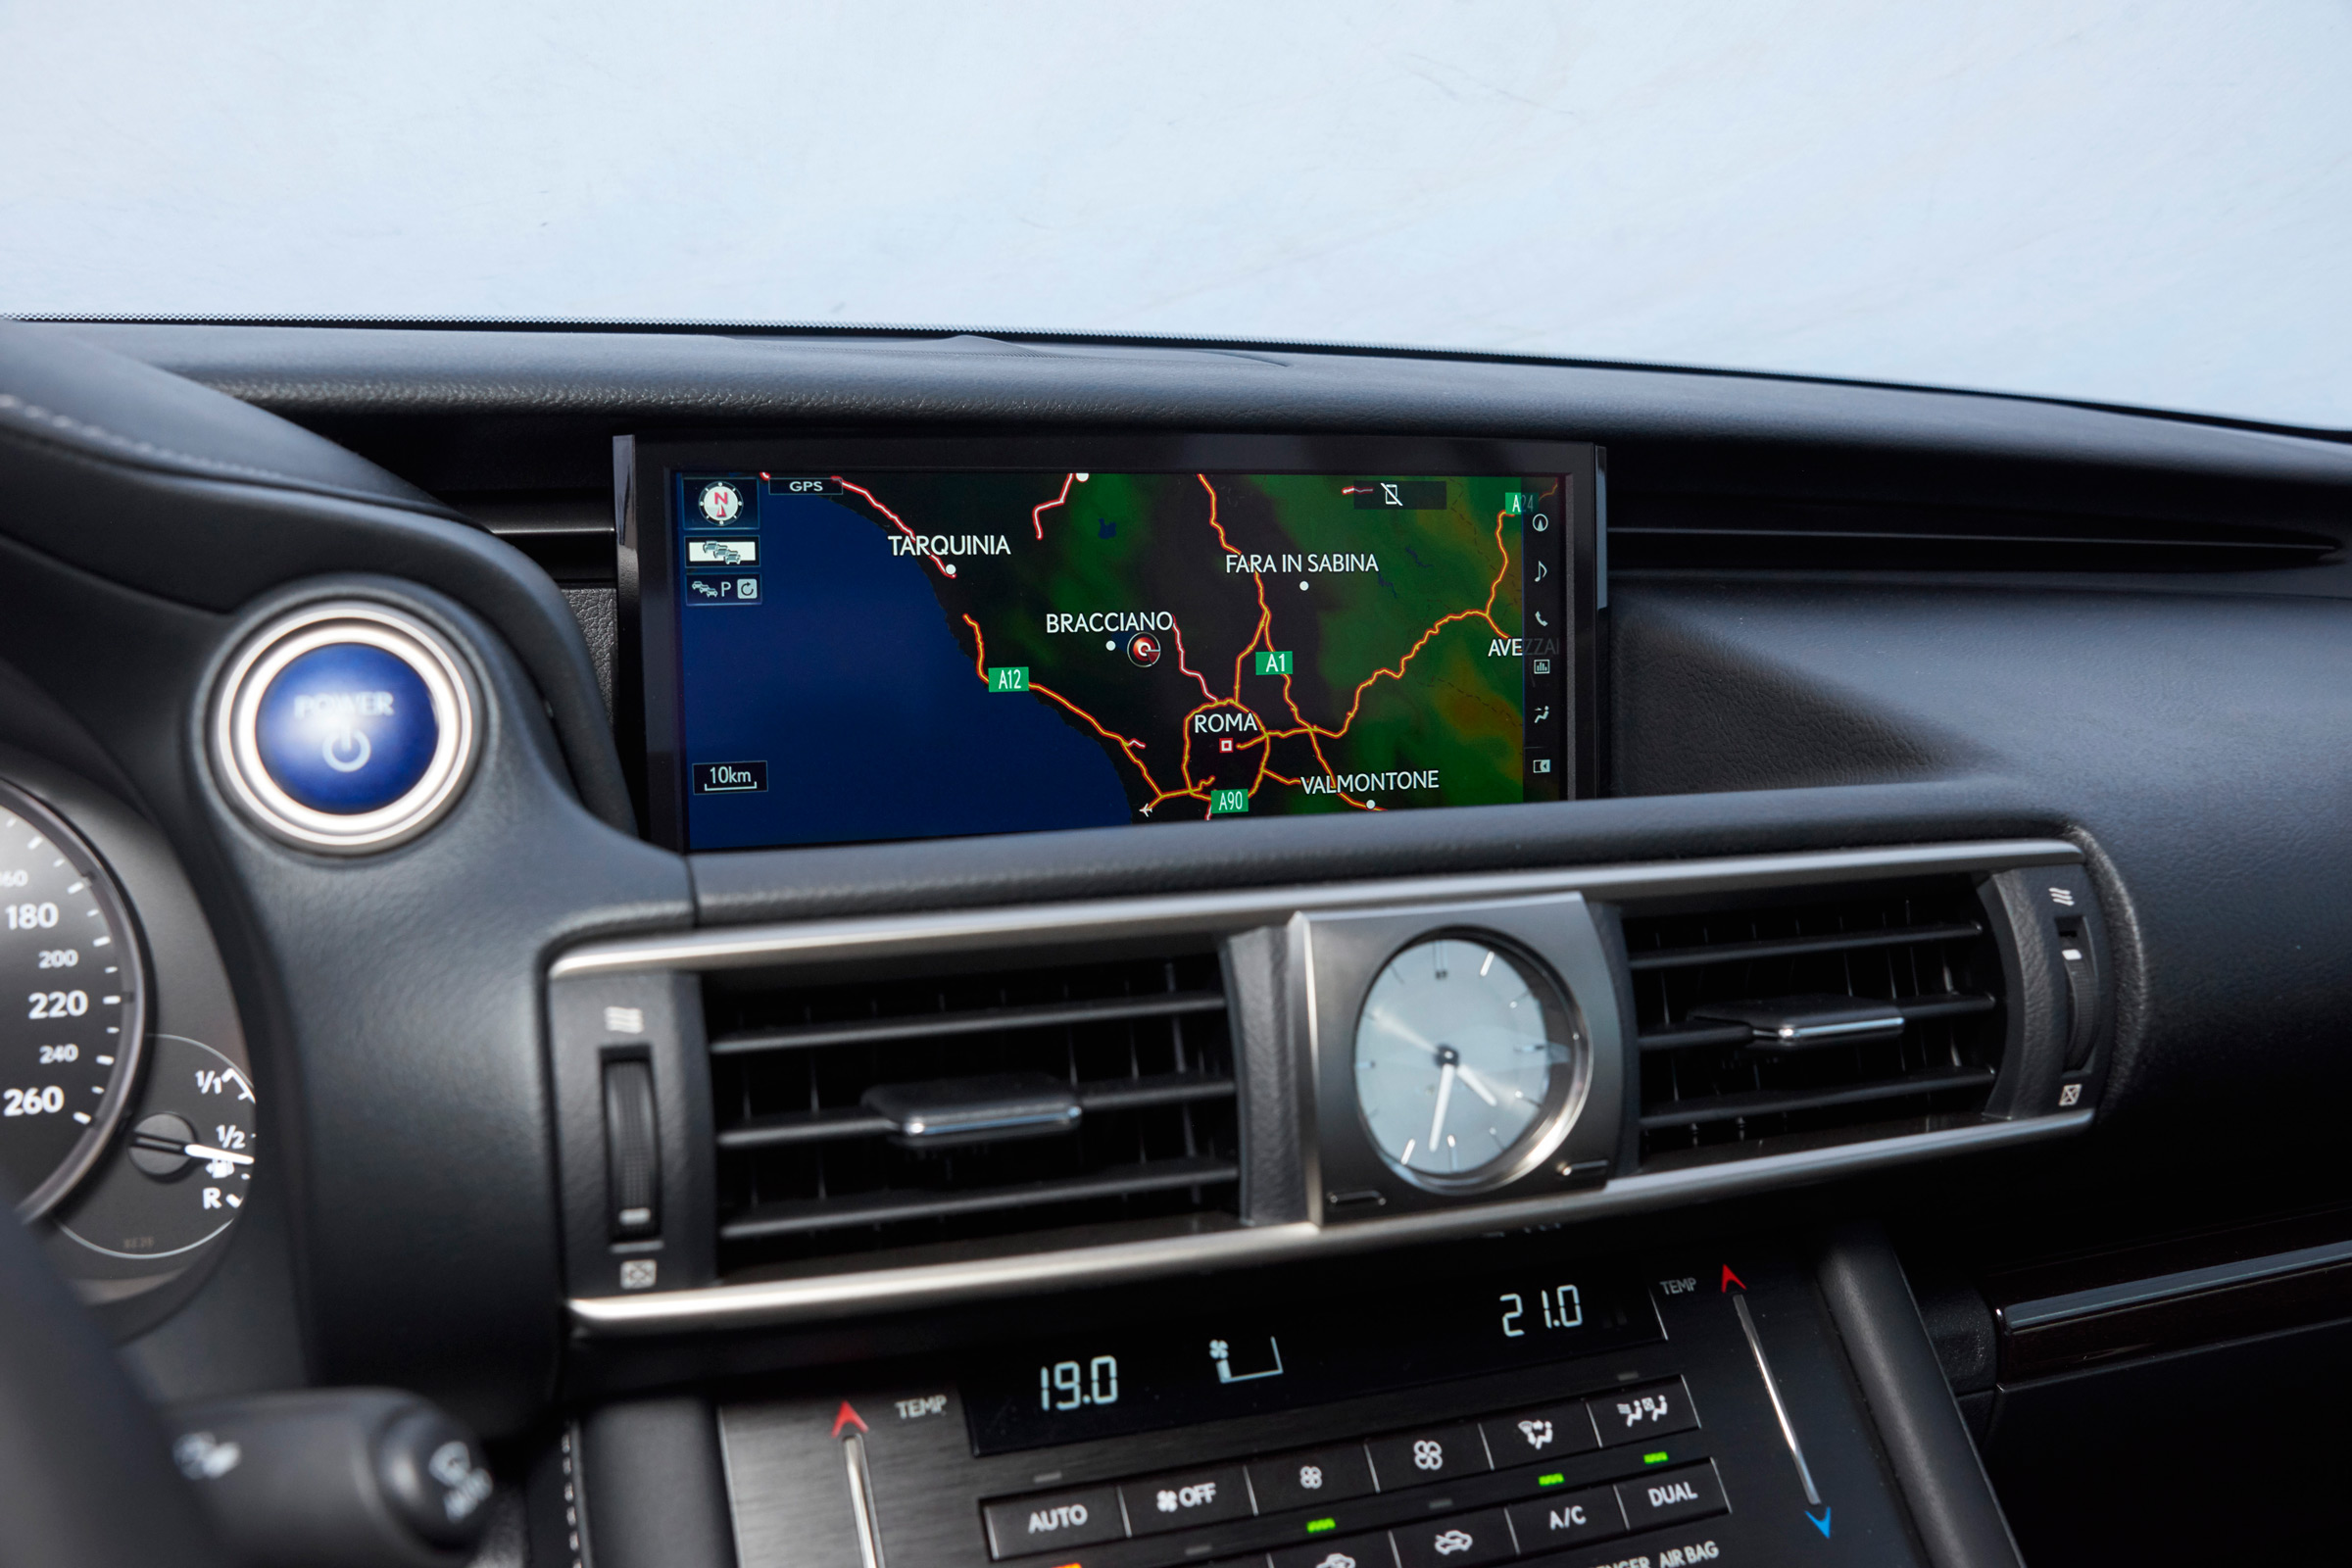 2017 Lexus IS 300h Interior View Center Headunit Screen (Photo 4 of 13)